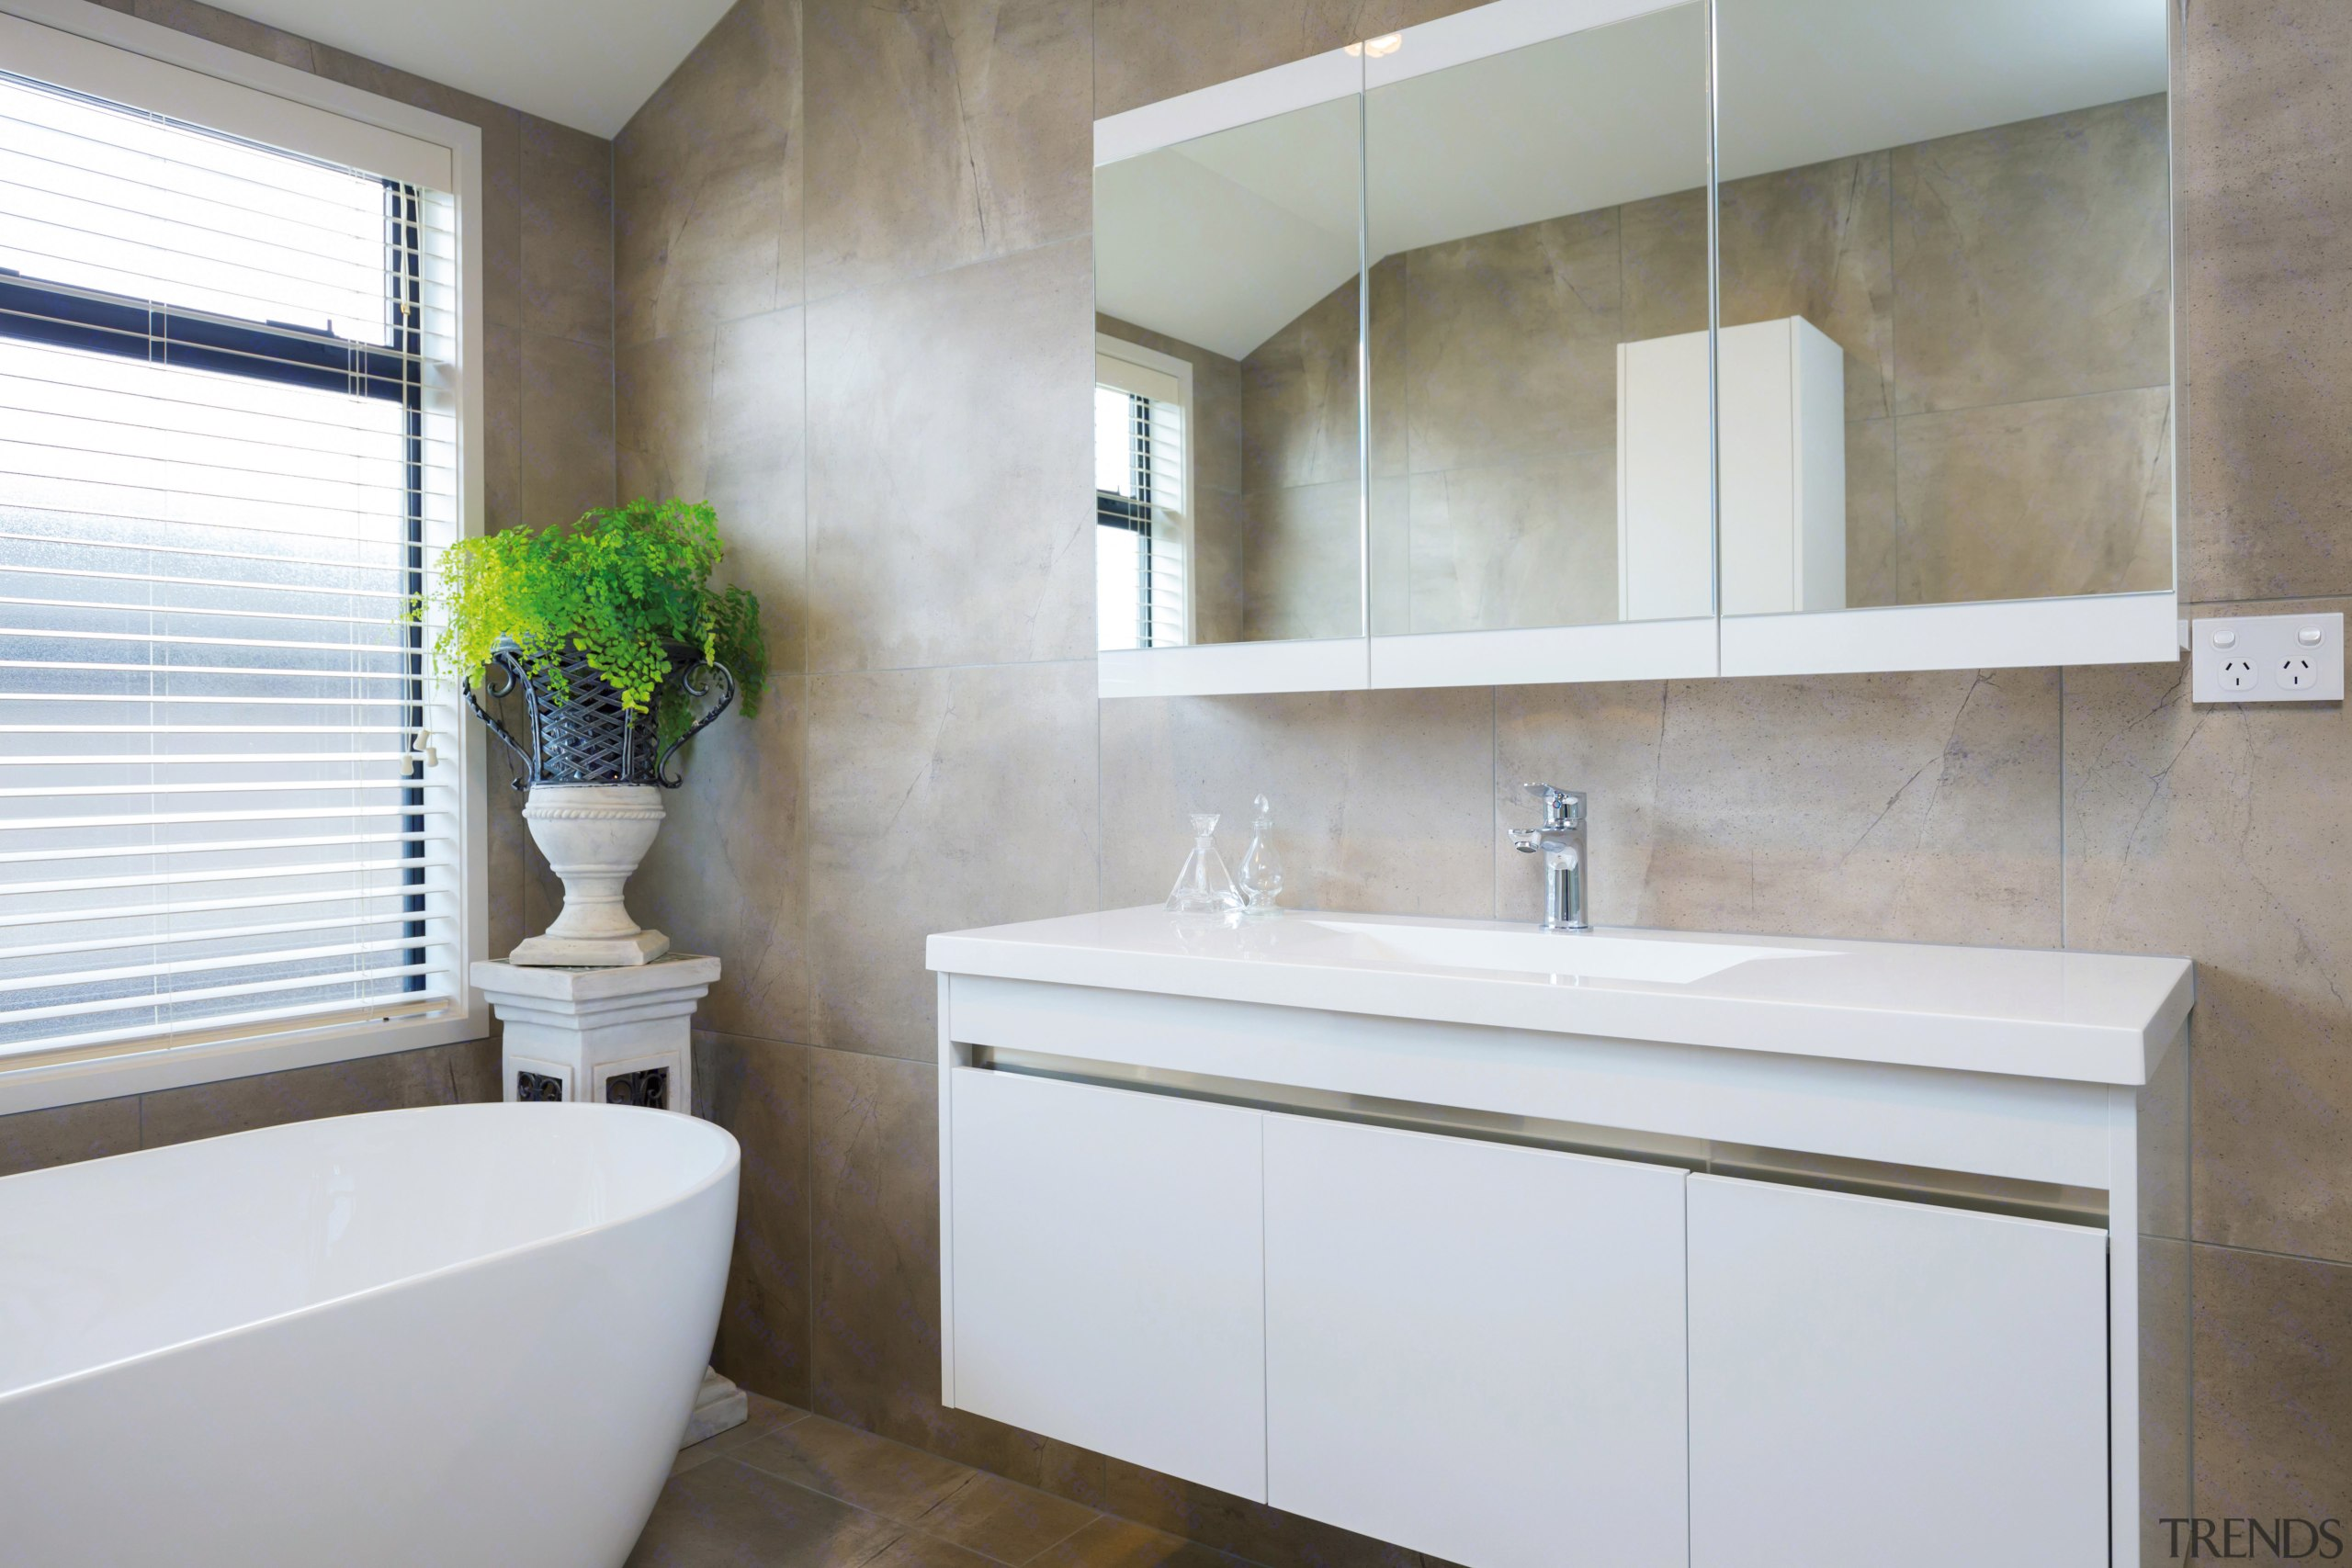 Trends] | The main bathroom in this GJ Gardner showhome has a ...